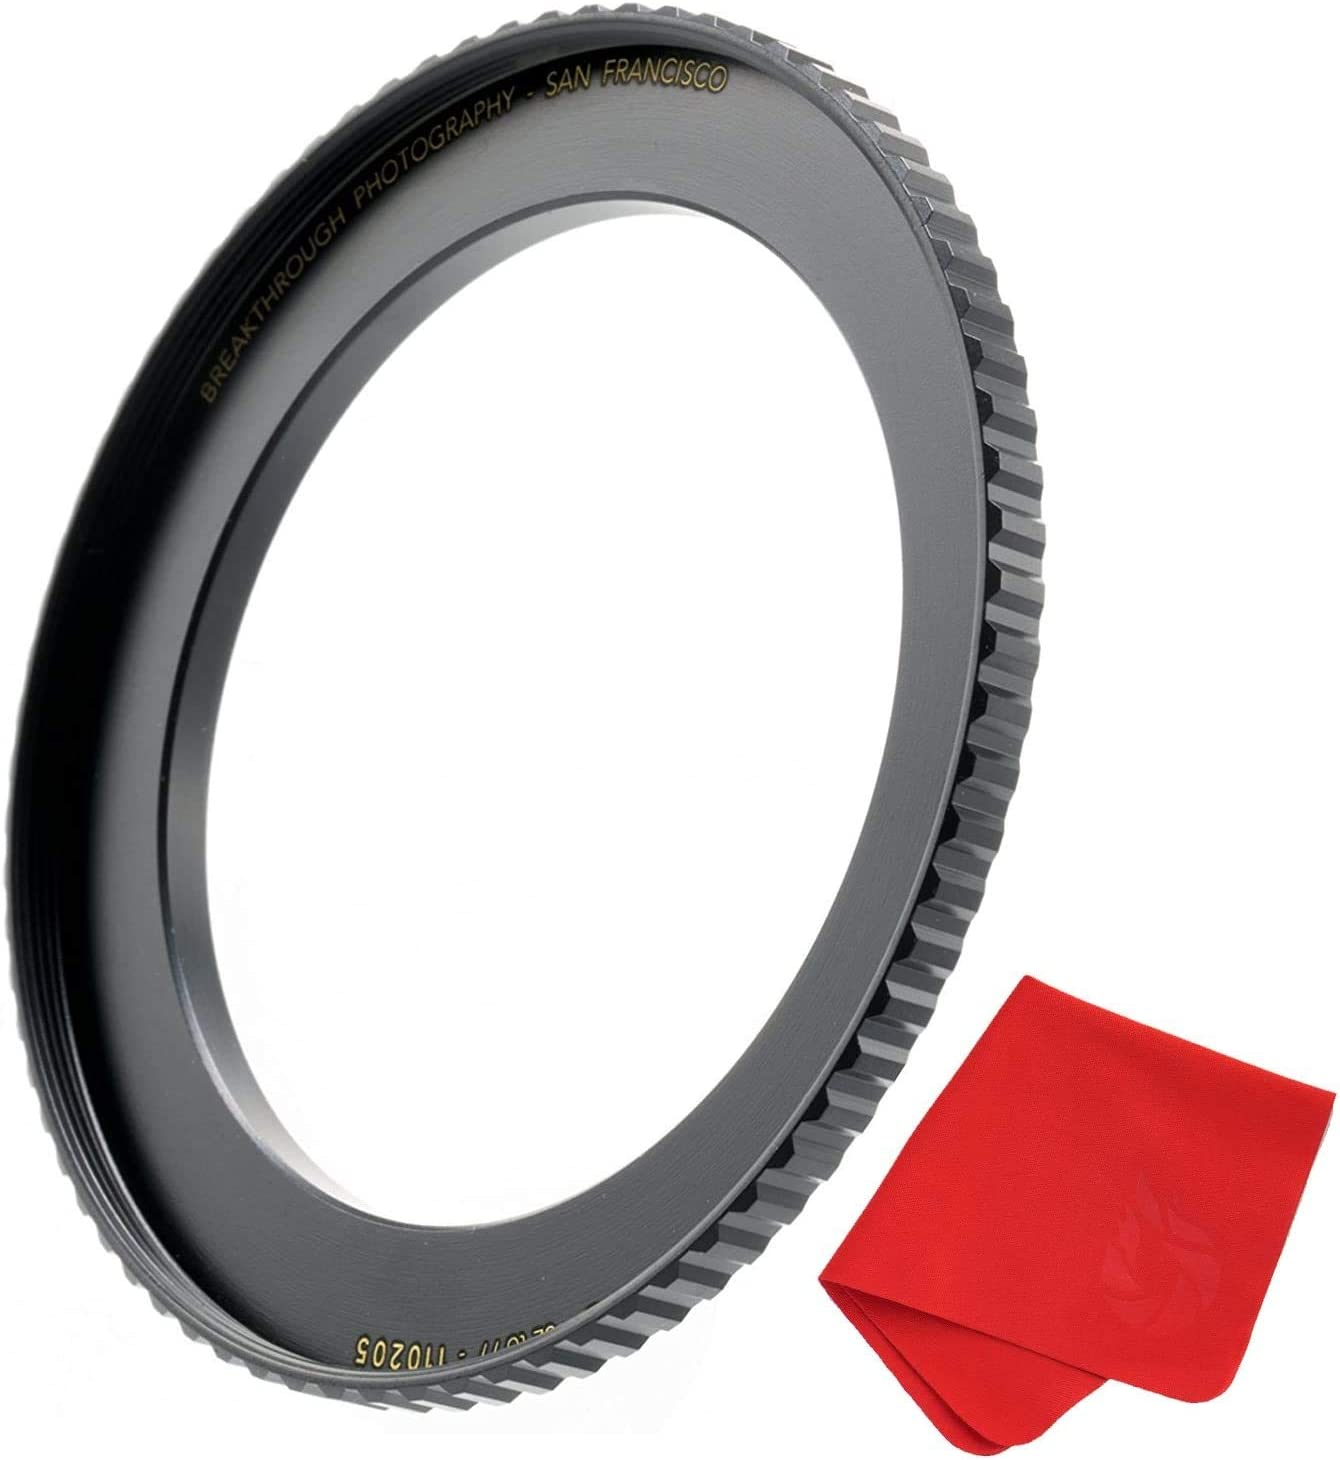 Breakthrough Photography 55mm to 67mm Step-Up Lens Adapter Ring for Filters Made of CNC Machined Brass with Matte Black Electroplated Finish